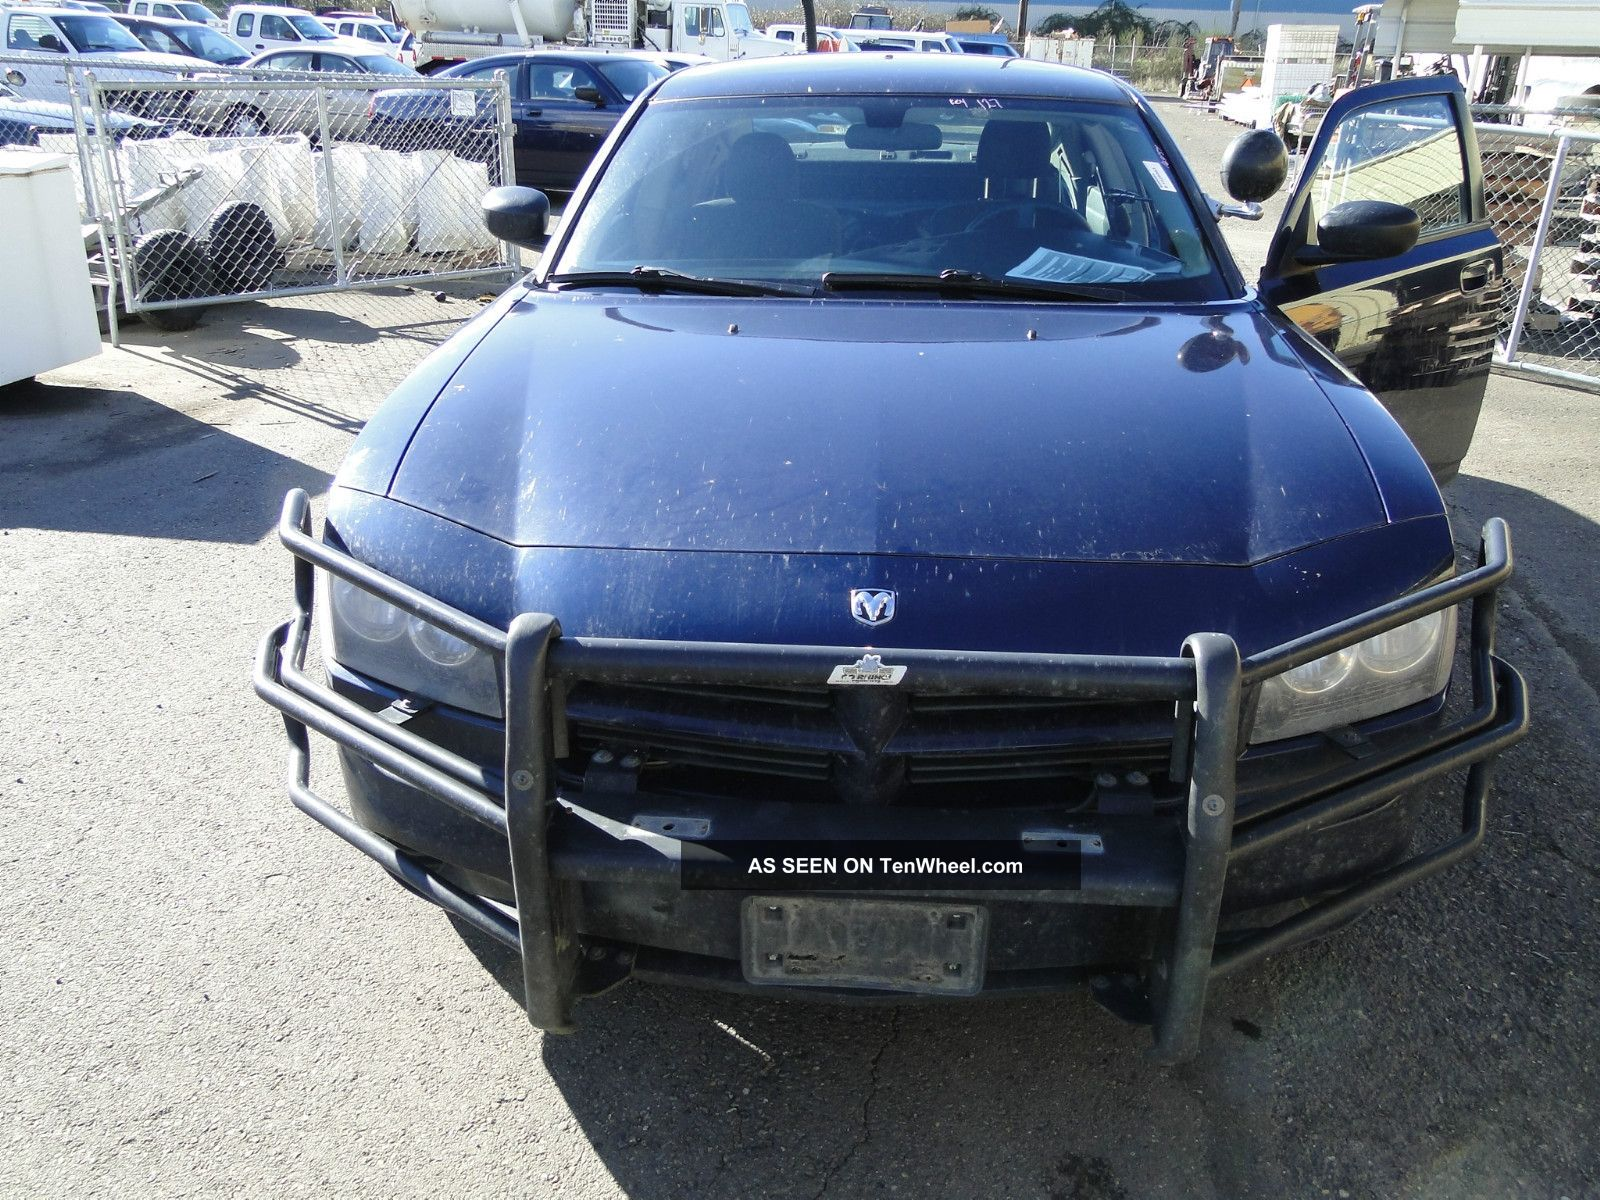 2006 Dodge Charger Police Vehicle photo - 1